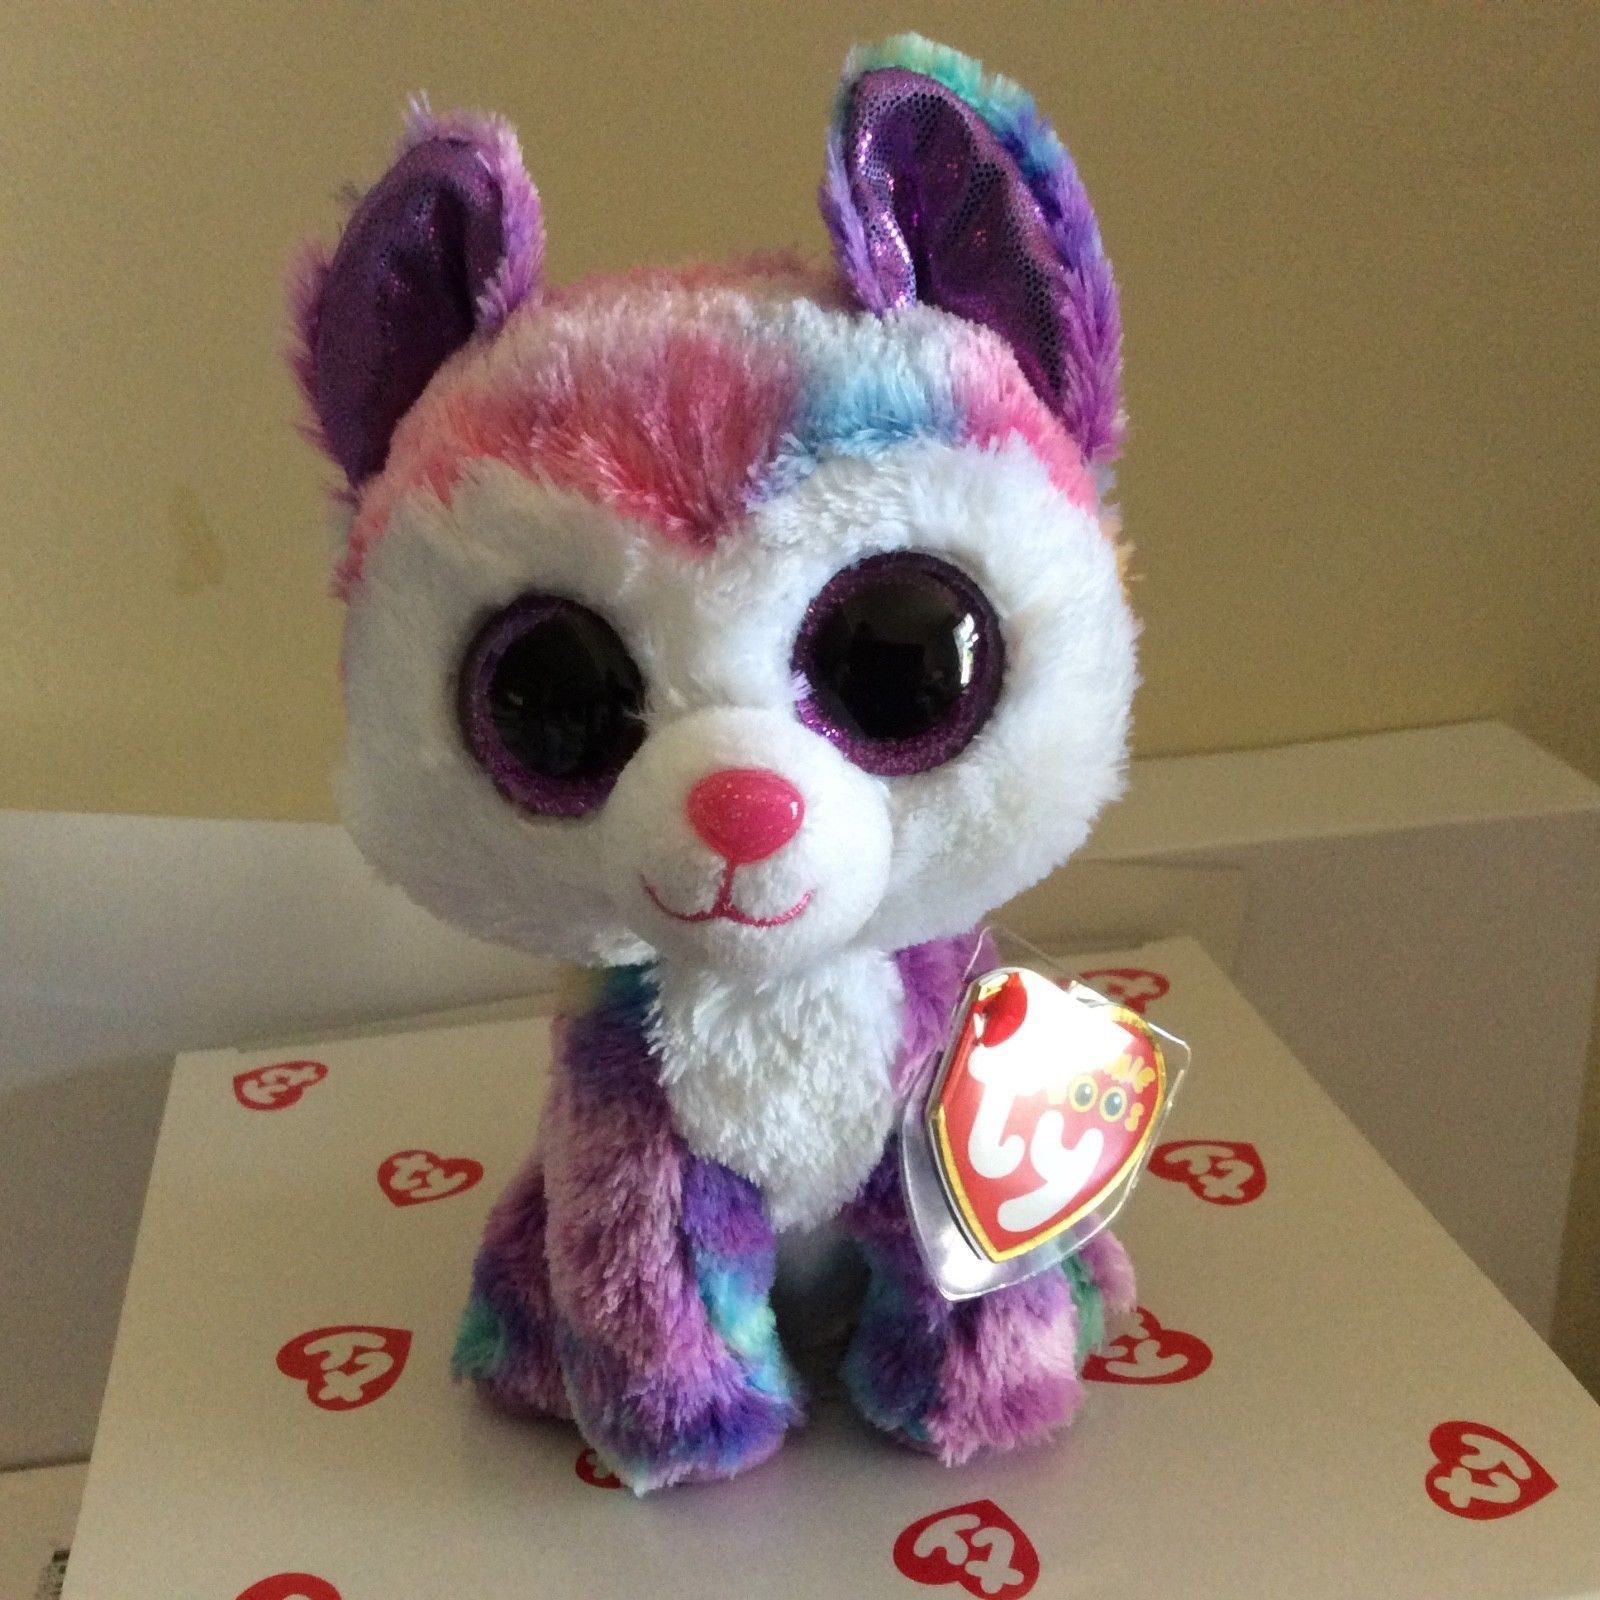 b5091c8e345 Current 438  Ty Beanie Boo Izabella The Husky 6 Claire S Exclusive Mwmts -   BUY IT NOW ONLY   29.99 on  eBay  current  beanie  izabella  husky  claire  ...